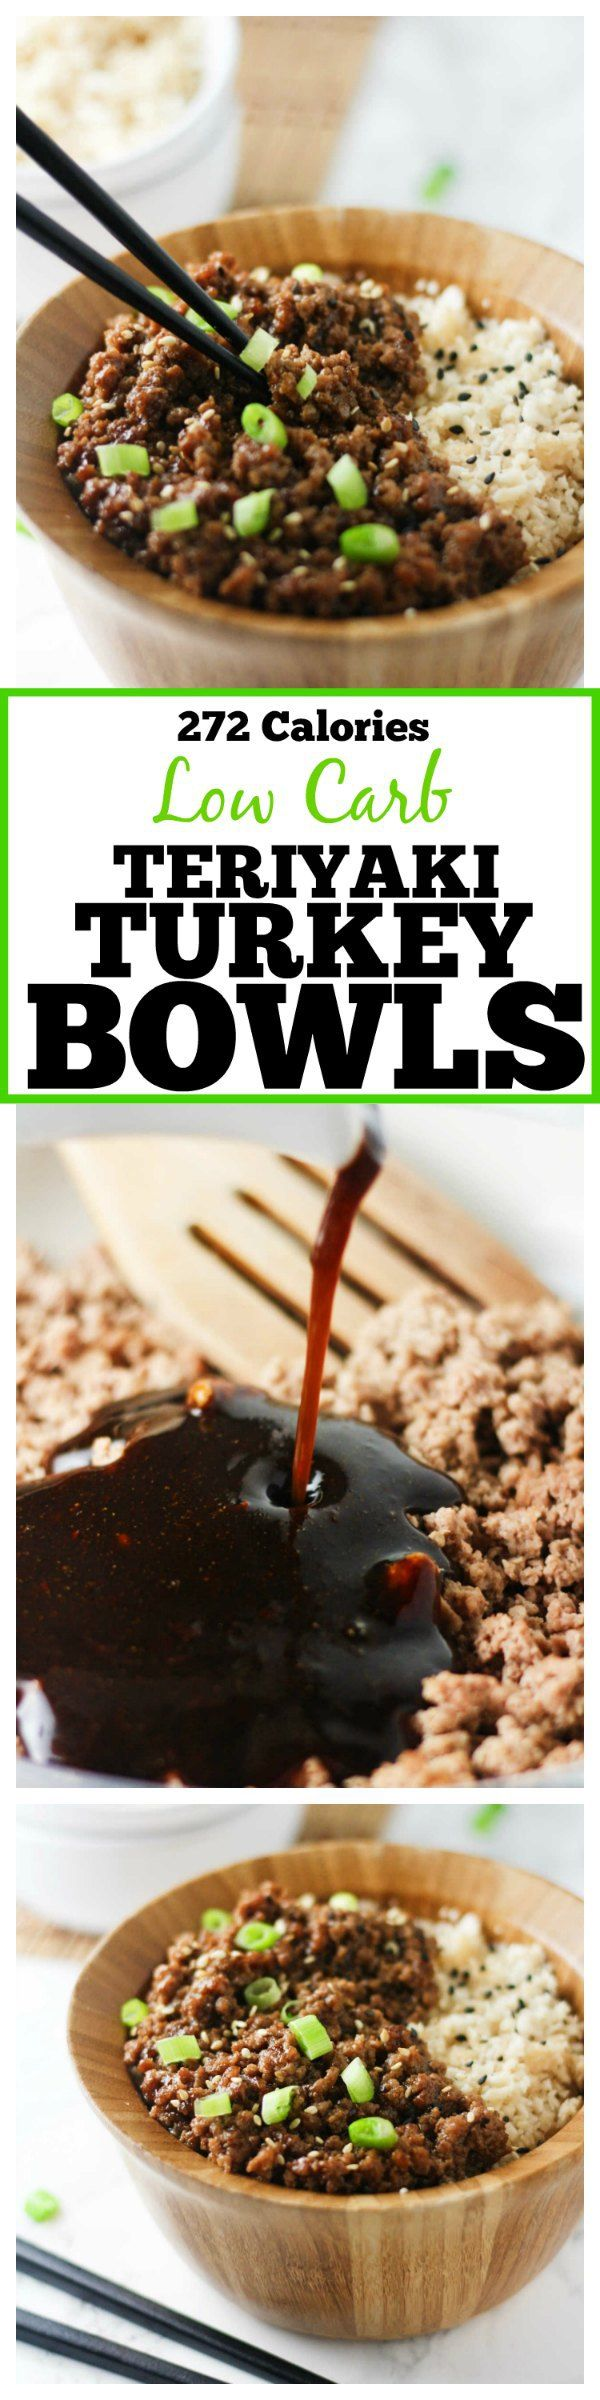 These delicious and easy Low Carb Teriyaki Turkey Bowls are ready in under 30 minutes and packed with tons of flavor!